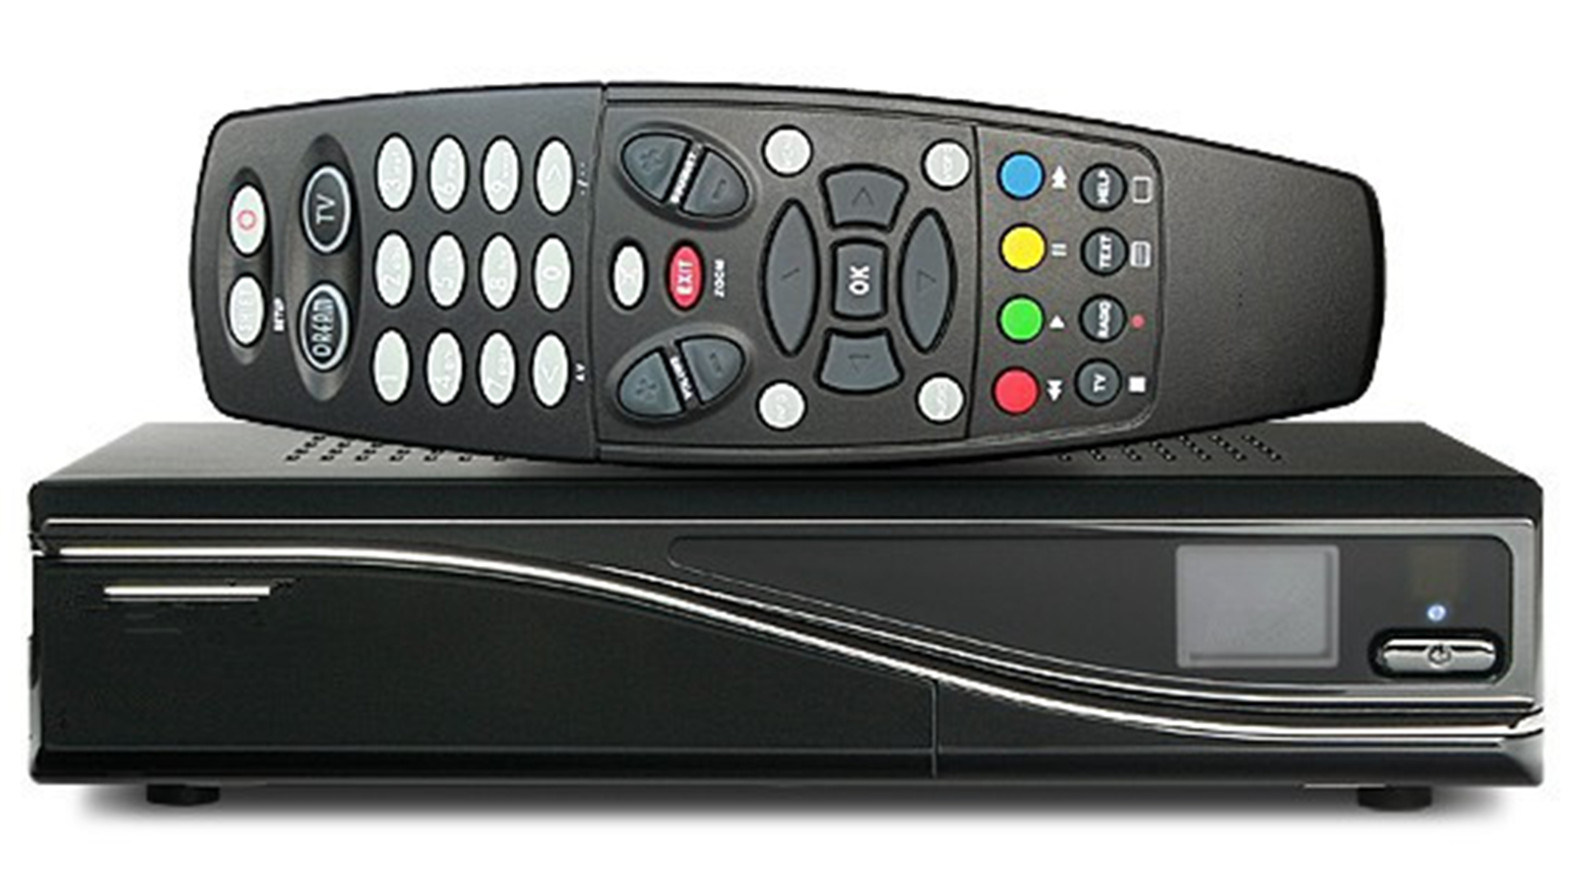 Vision Satellite Programs with New 800HD Se Satellite Receiver